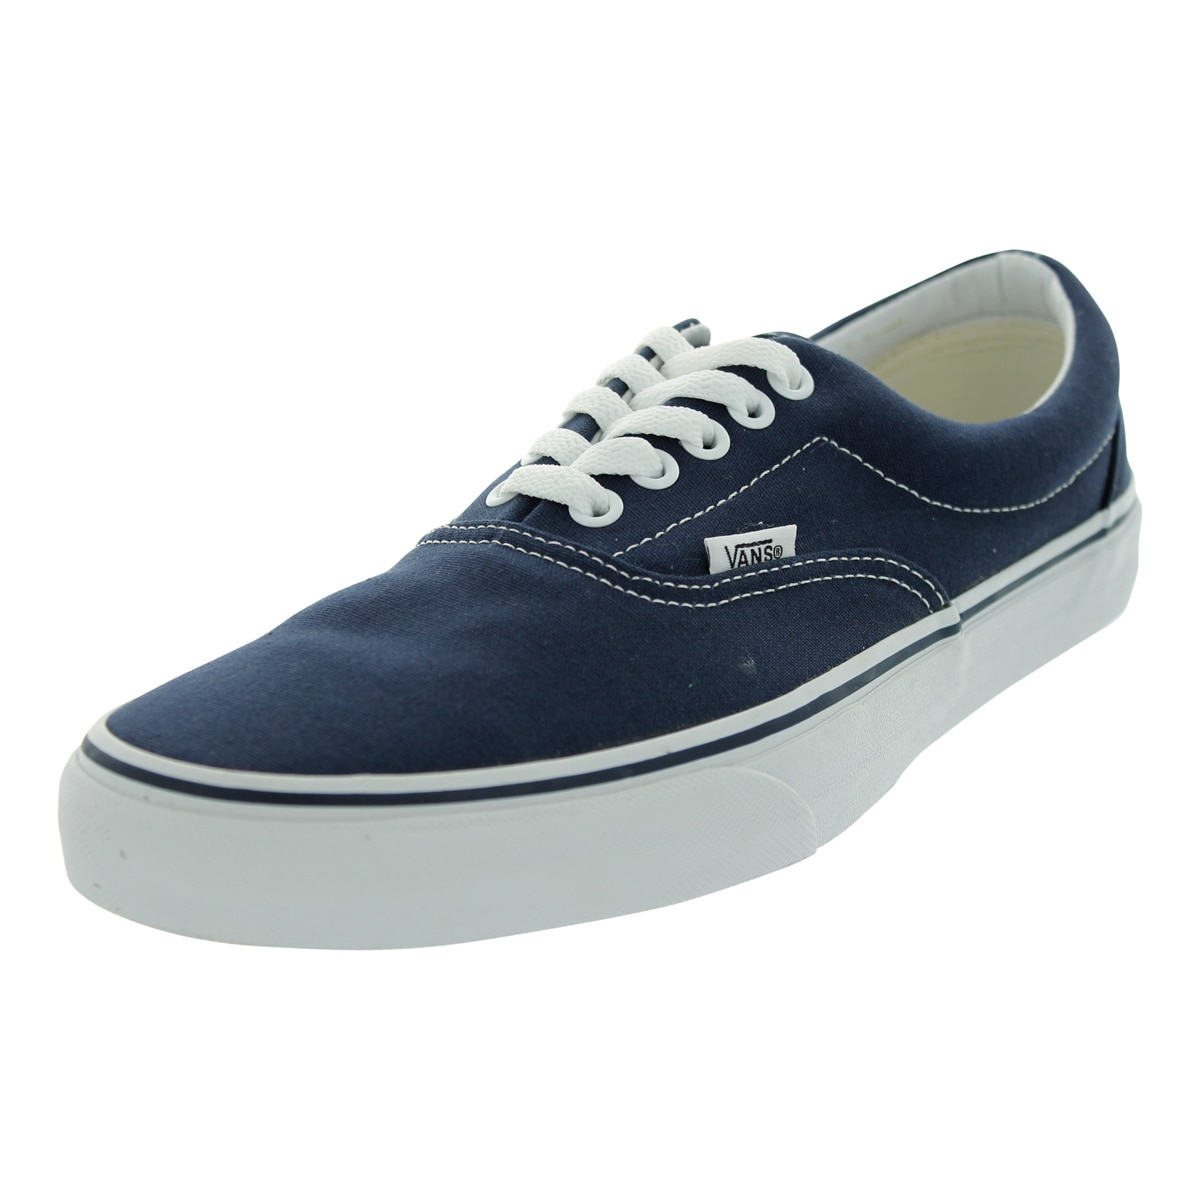 Shop Vans Era Blue Canvas Skate Shoes Overstock 12115644